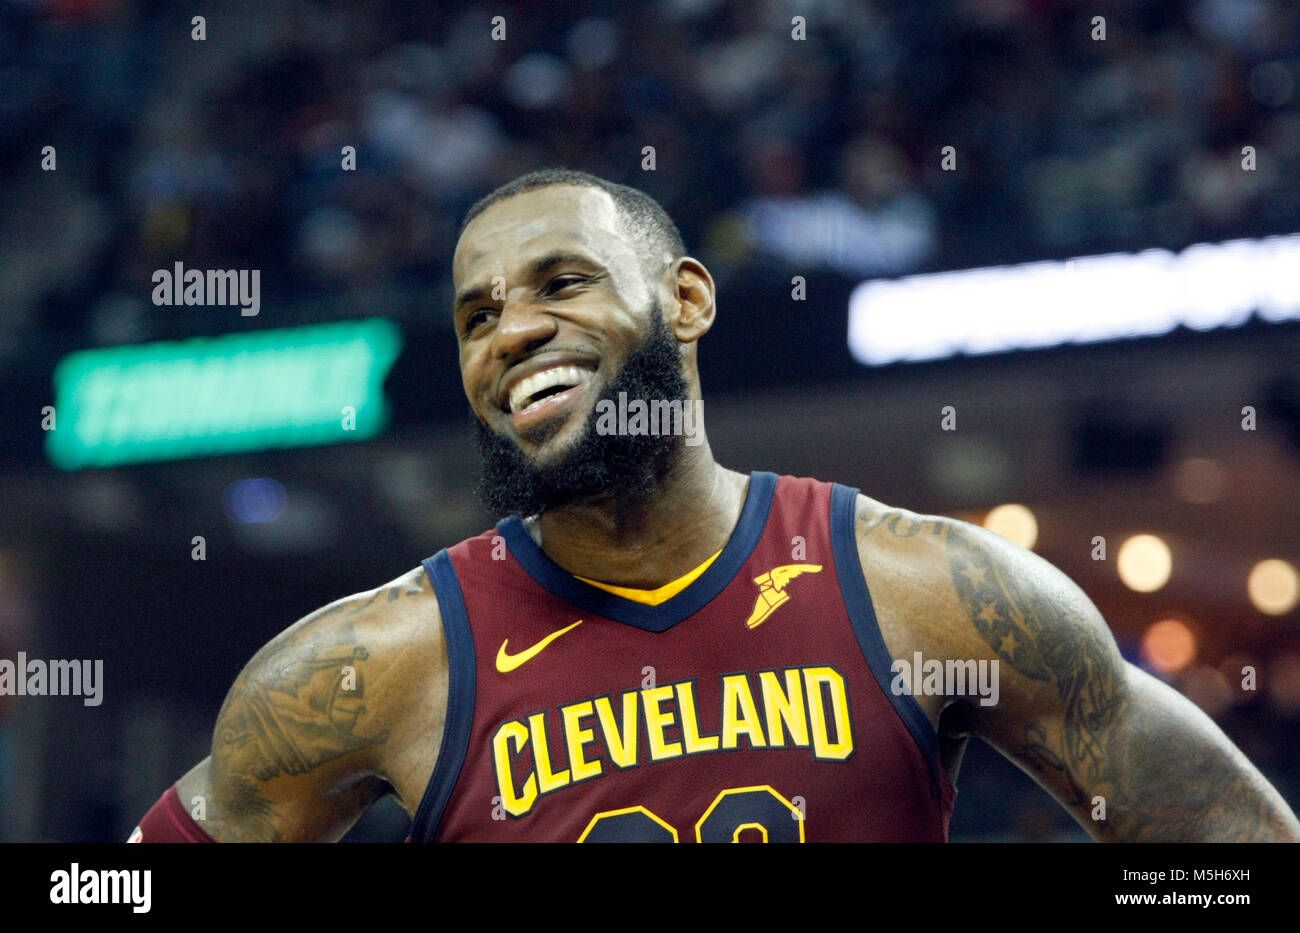 92334d9ee619 Cleveland Cavaliers Lebron James during the NBA game against Memphis  Grizzlies at the FedEx Forum in Memphis